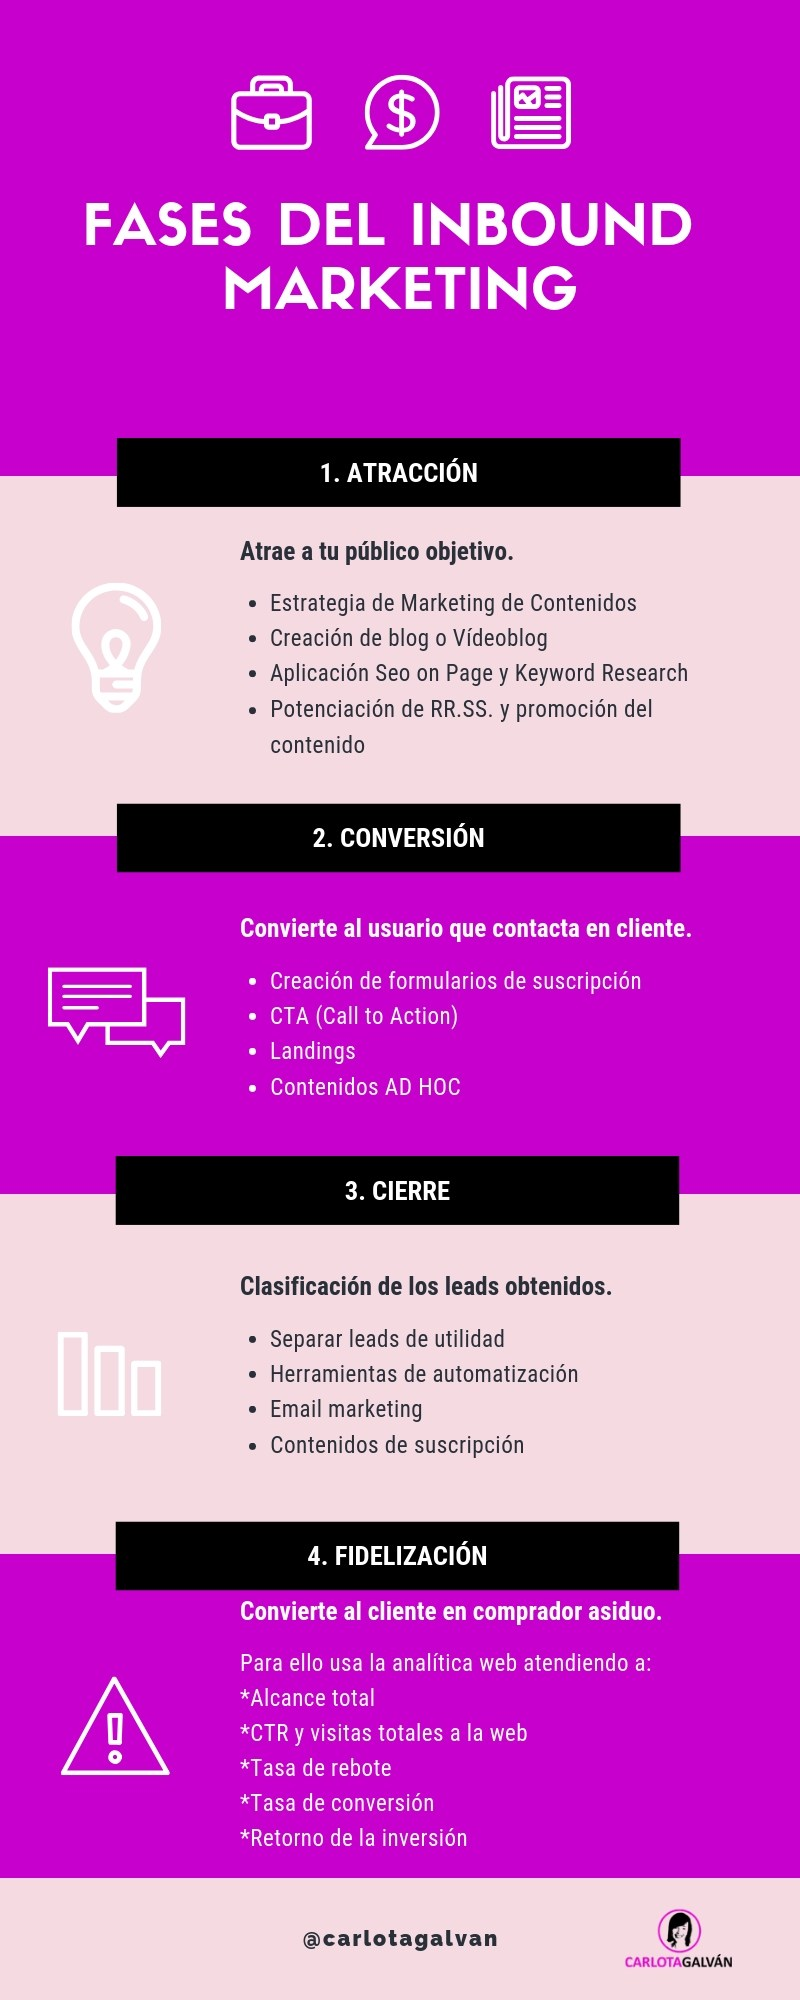 Fases del Inbound Marketing #infografia #infographic #marketing